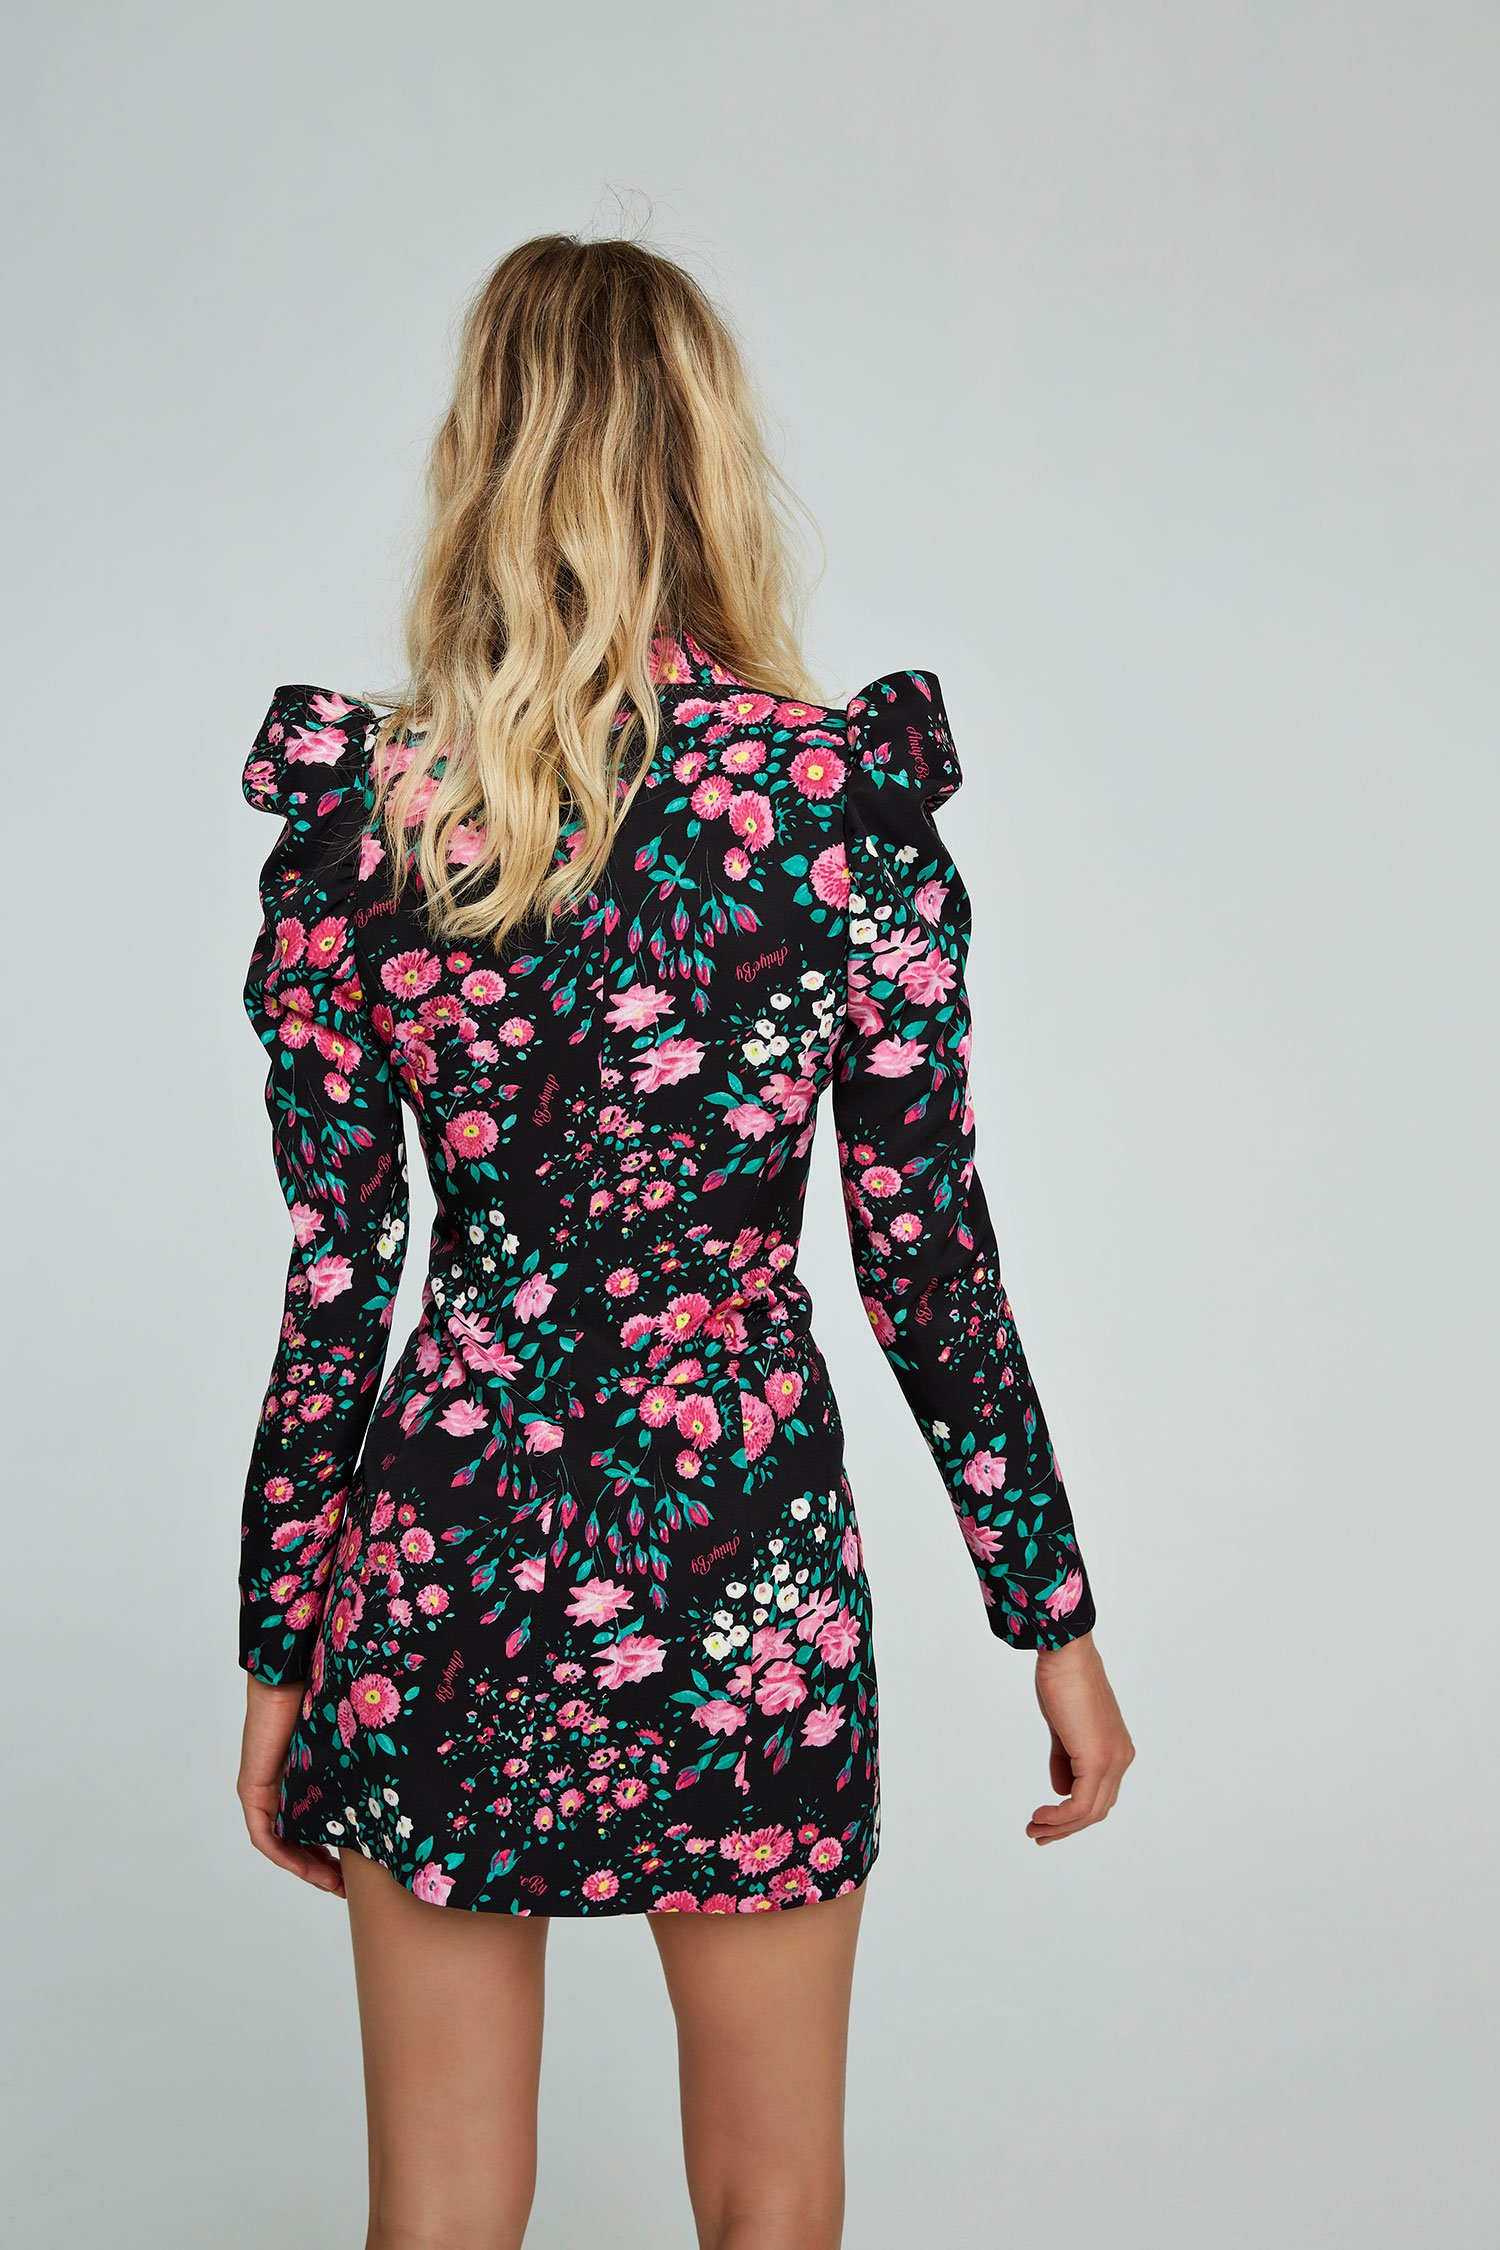 SHOPPING ON LINE ANIYE BY JACKET DRESS GARDEN NEW COLLECTION WOMEN'S SPRING SUMMER 2021